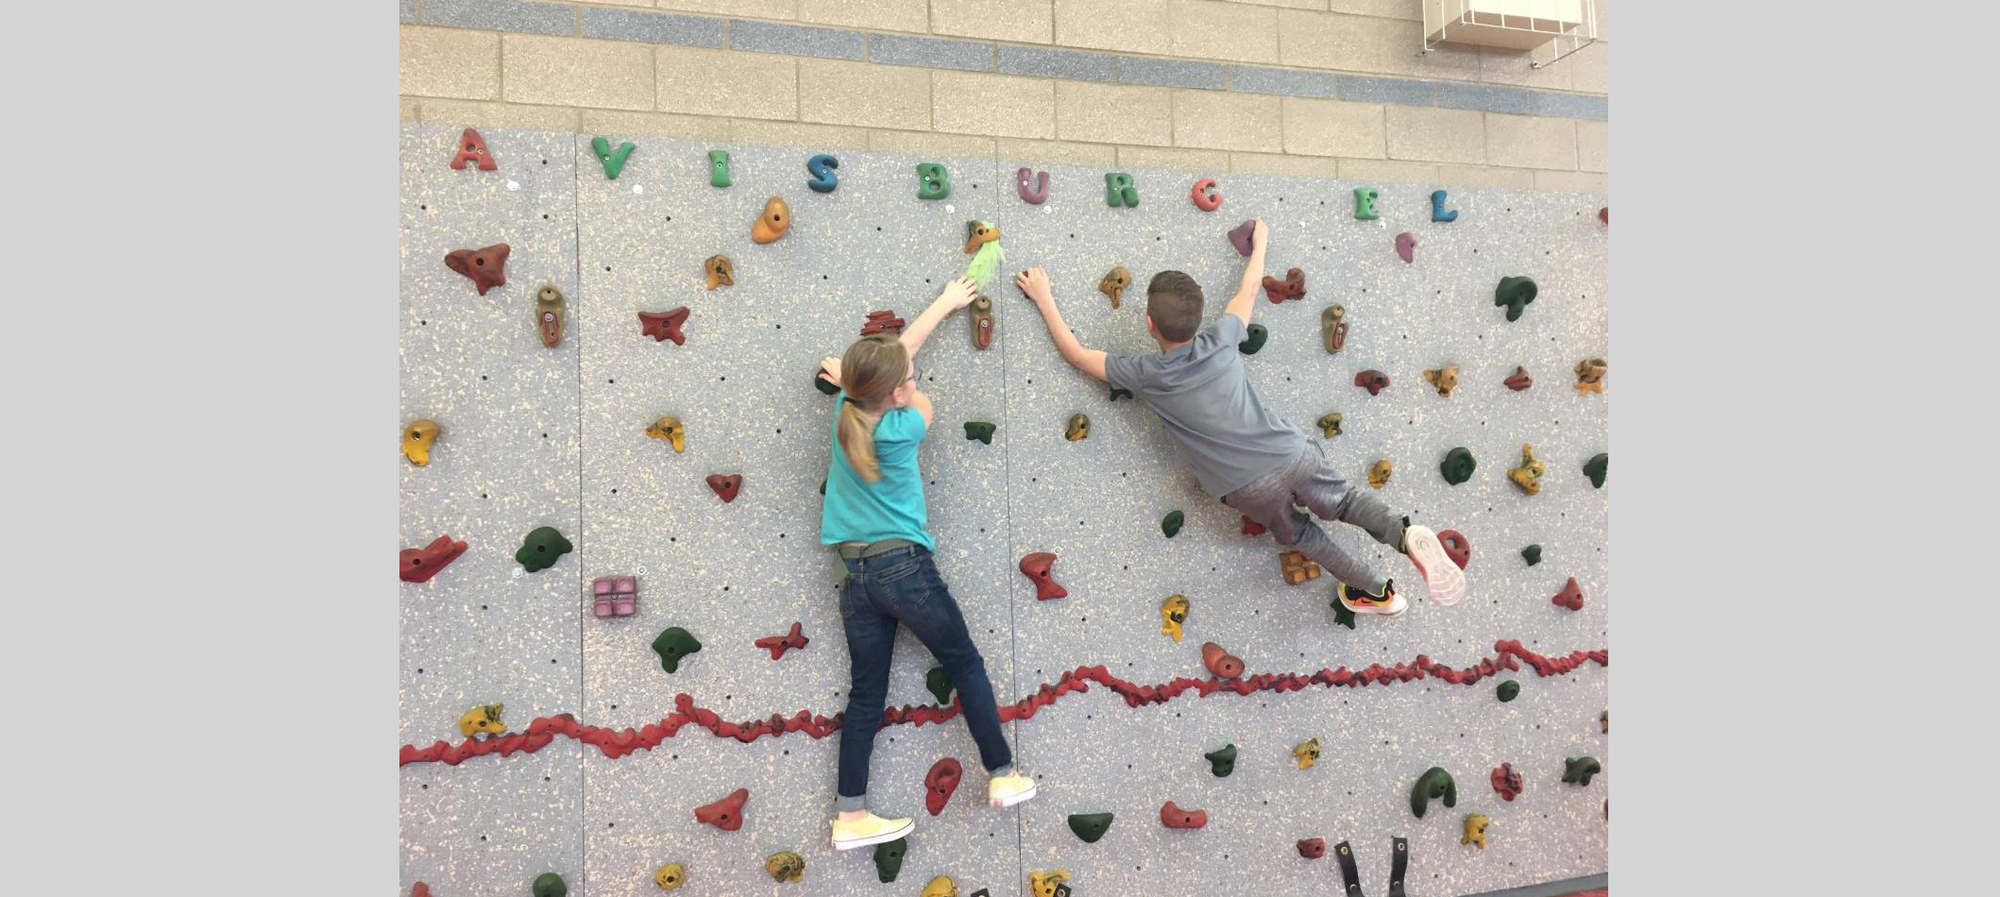 Two students climbing on the climbing wall in the gym.